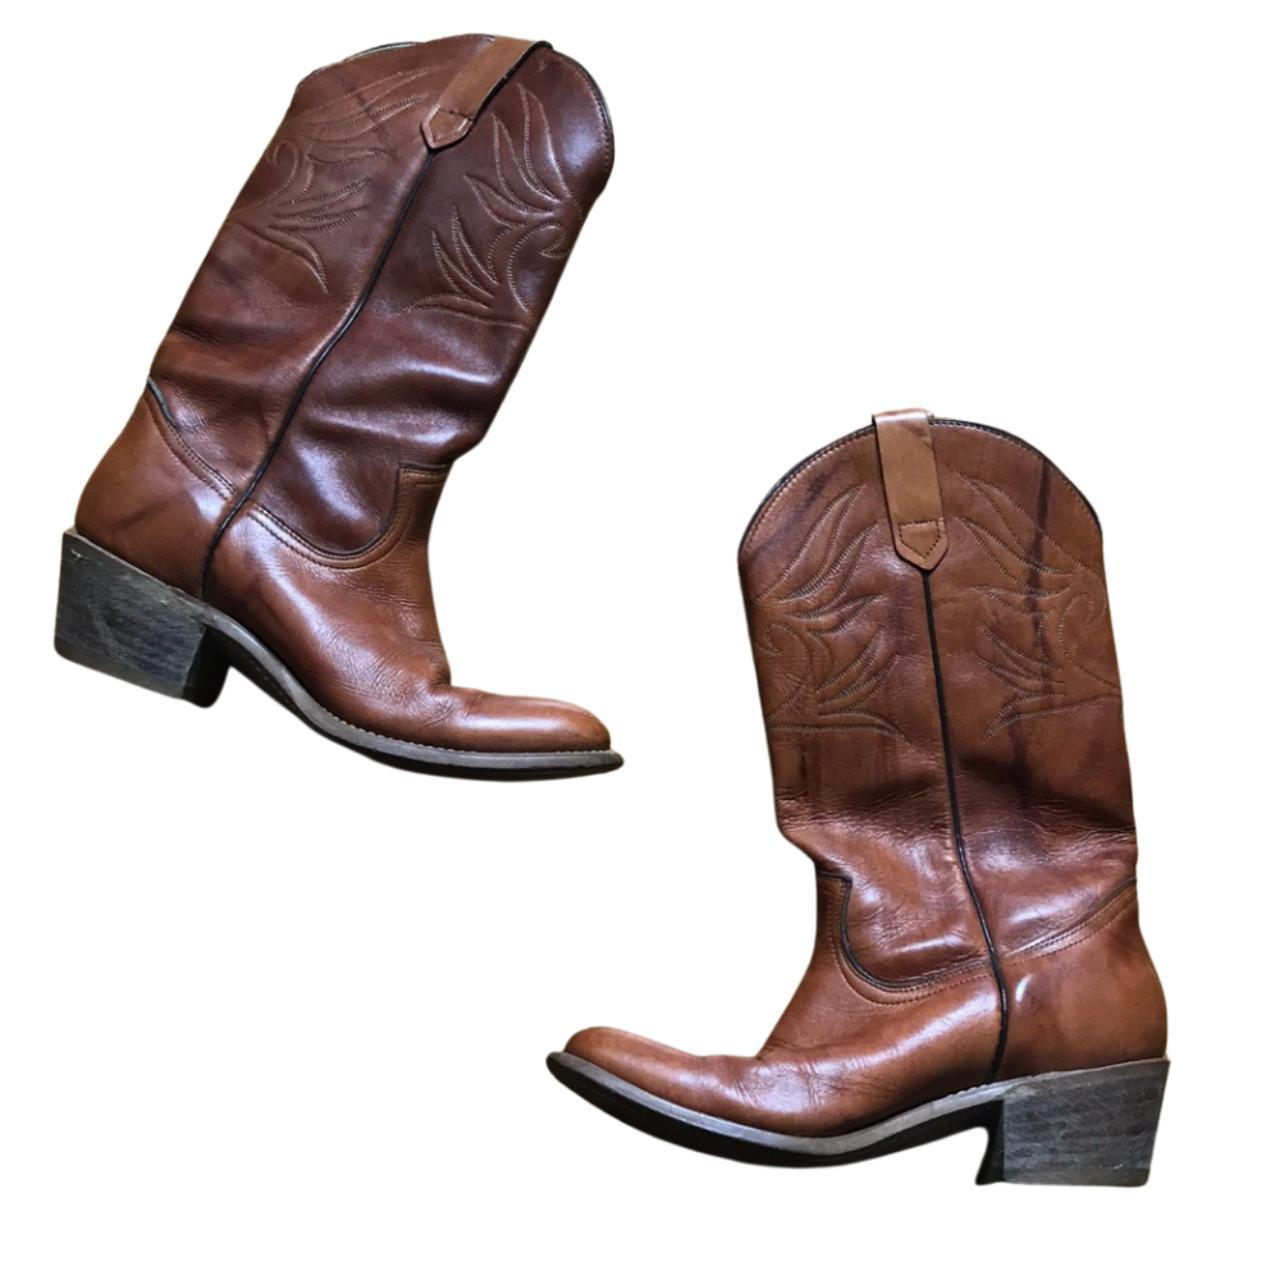 Product Image 1 - 1990s VTG Frye American Classic